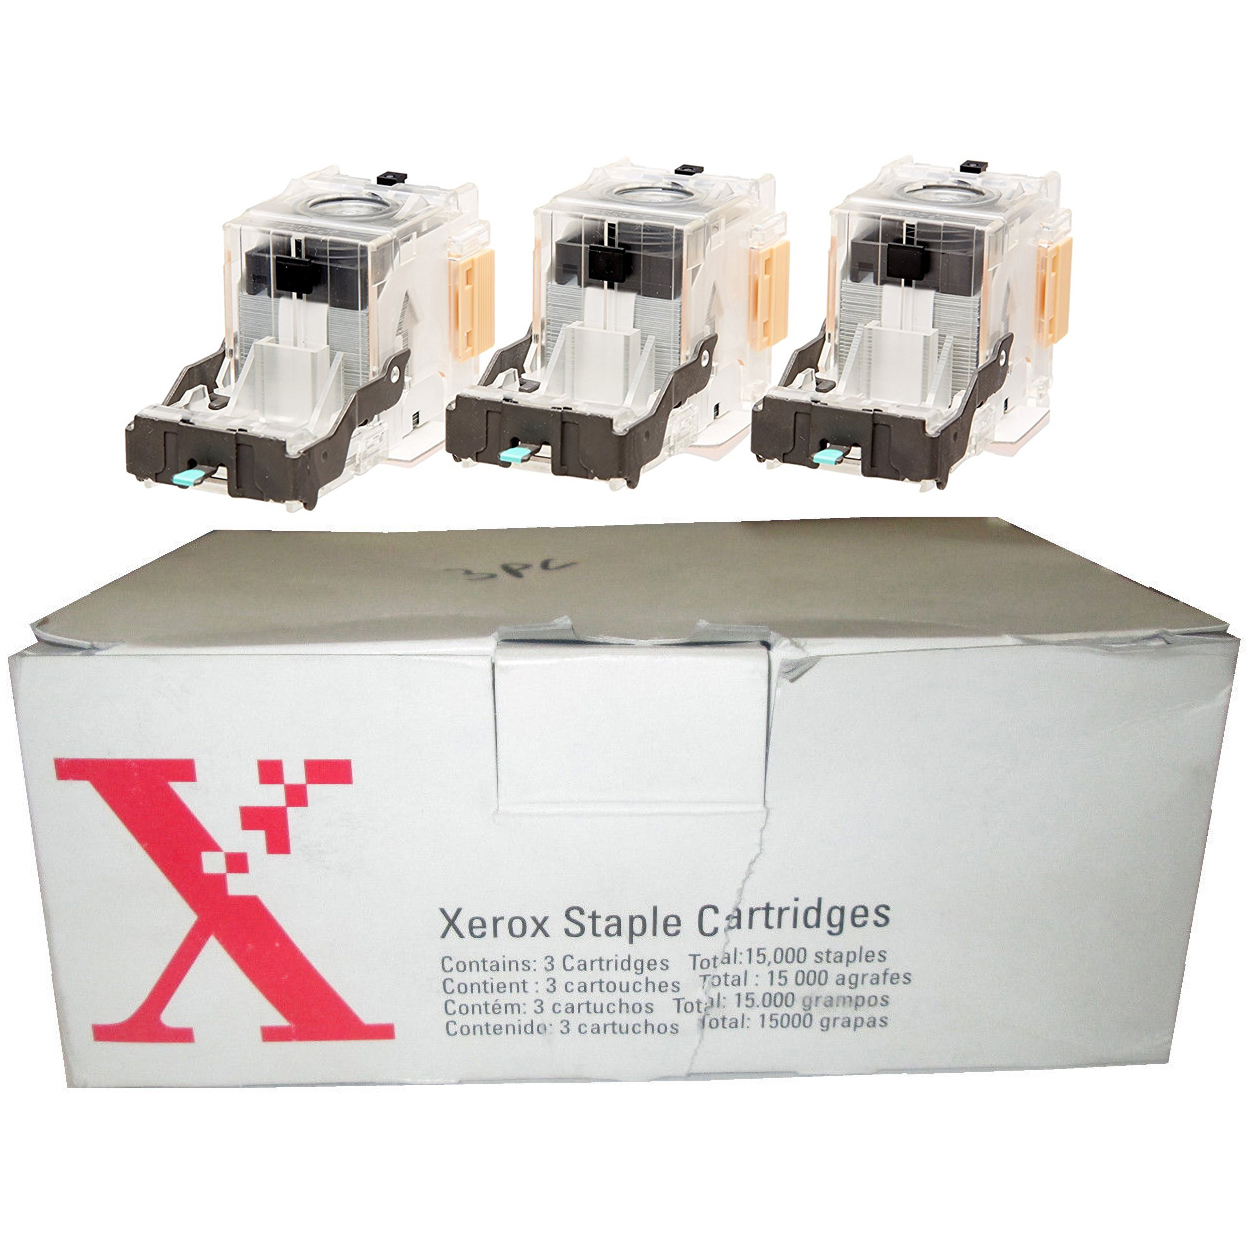 Original Xerox 108R00493 Staple Cartridge - 3 Cartridges Per Carton (108R00493)